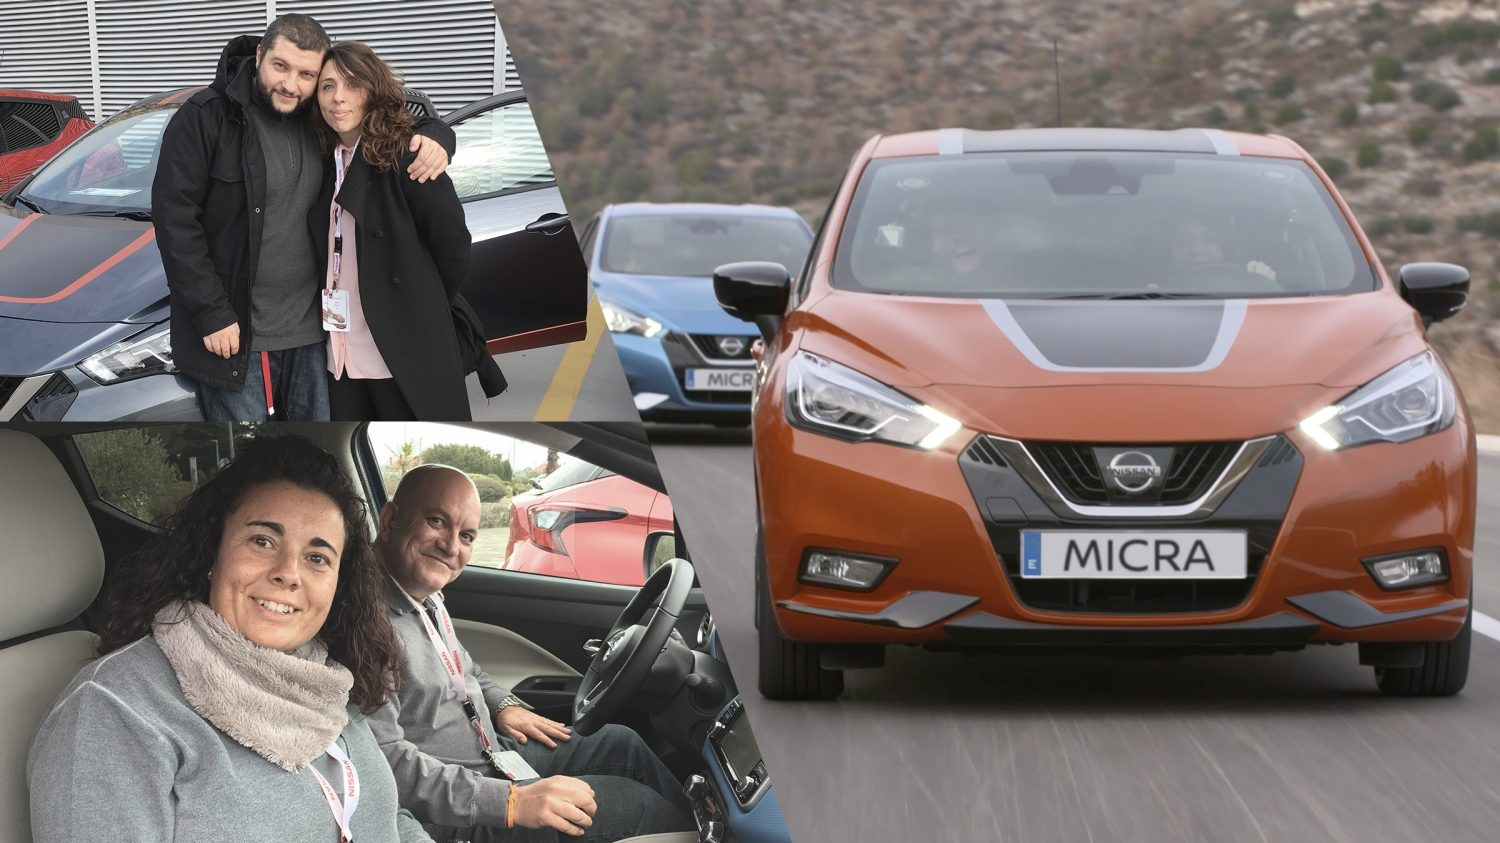 WHAT MAKES THE ALL NEW NISSAN MICRA THE PERFECT ACCOMPLICE?